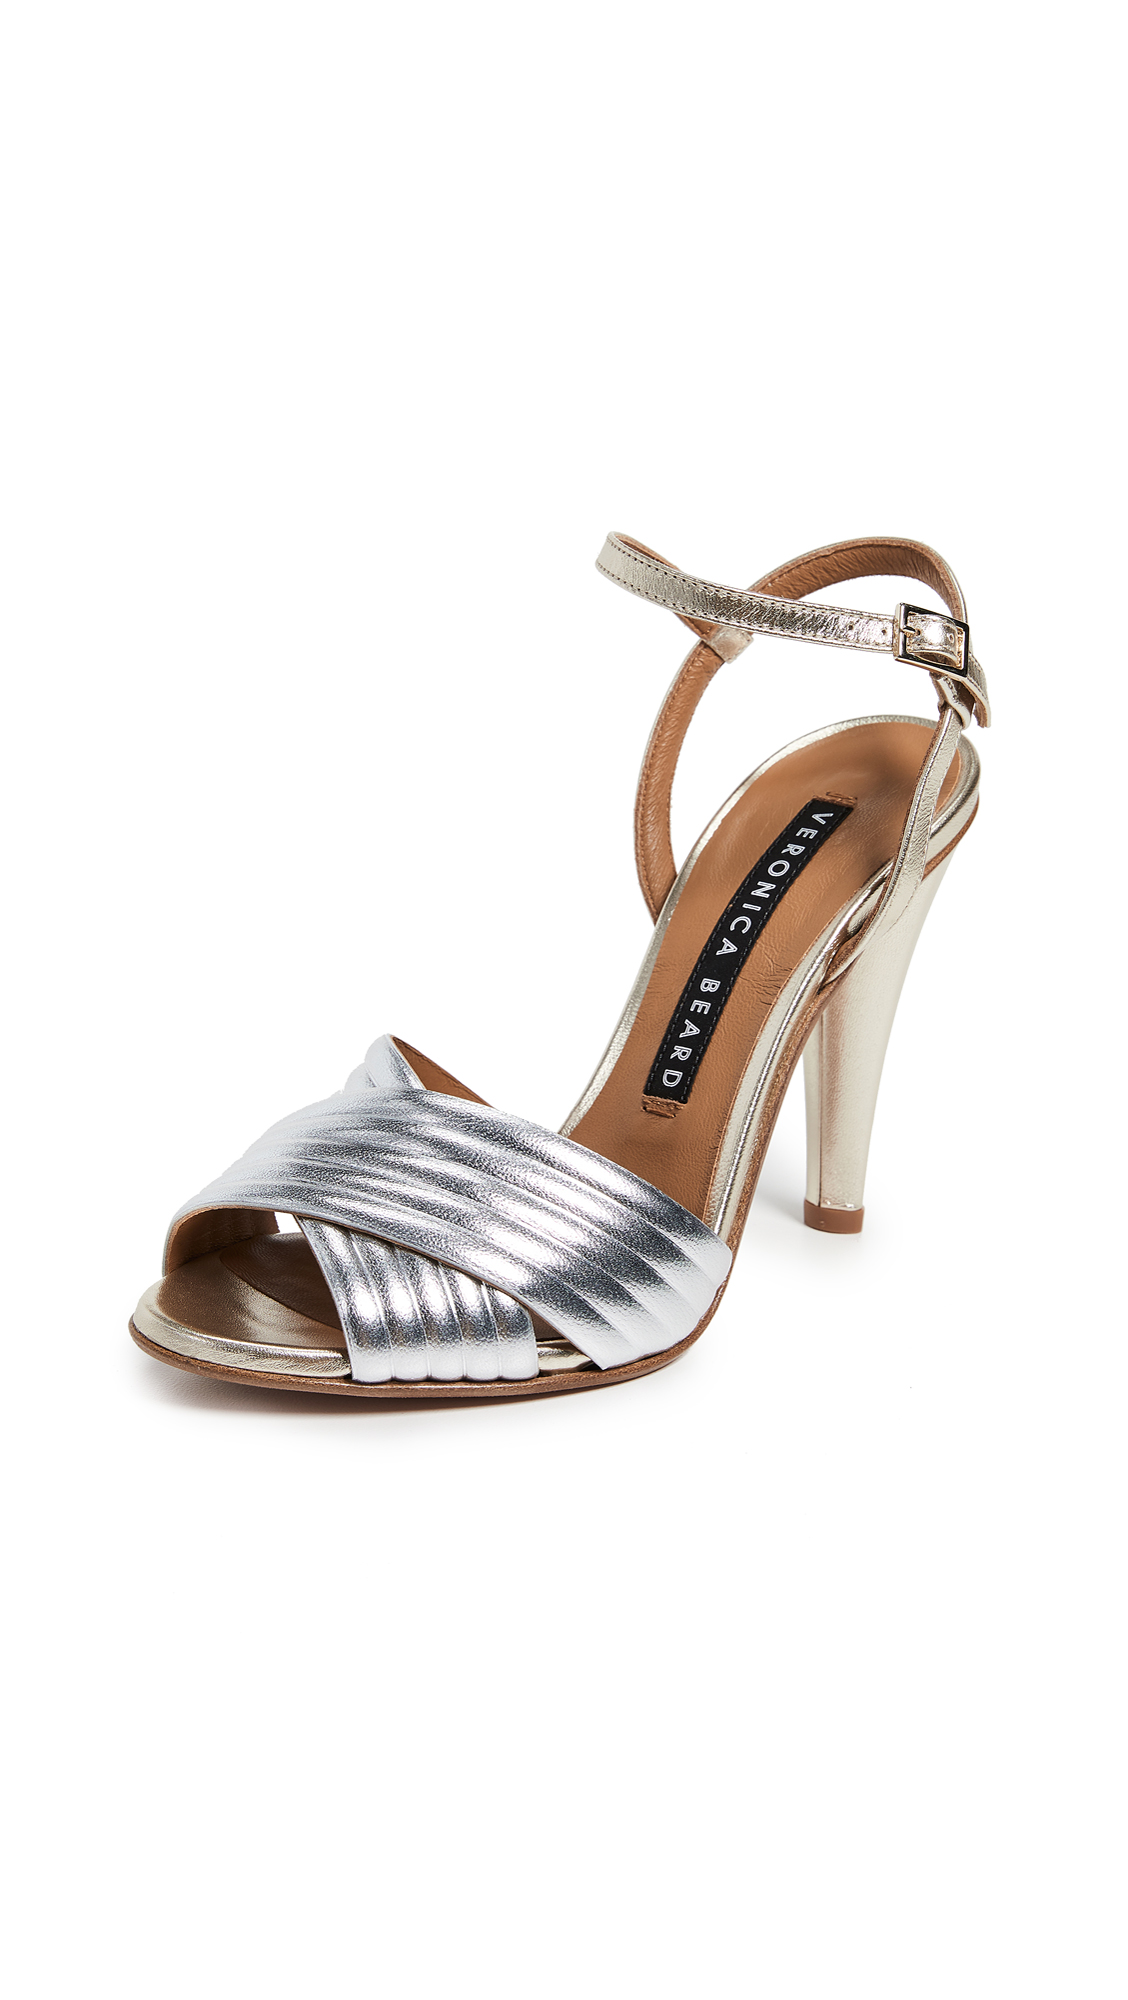 Veronica Beard Olympia Sandals - Silver/Gold